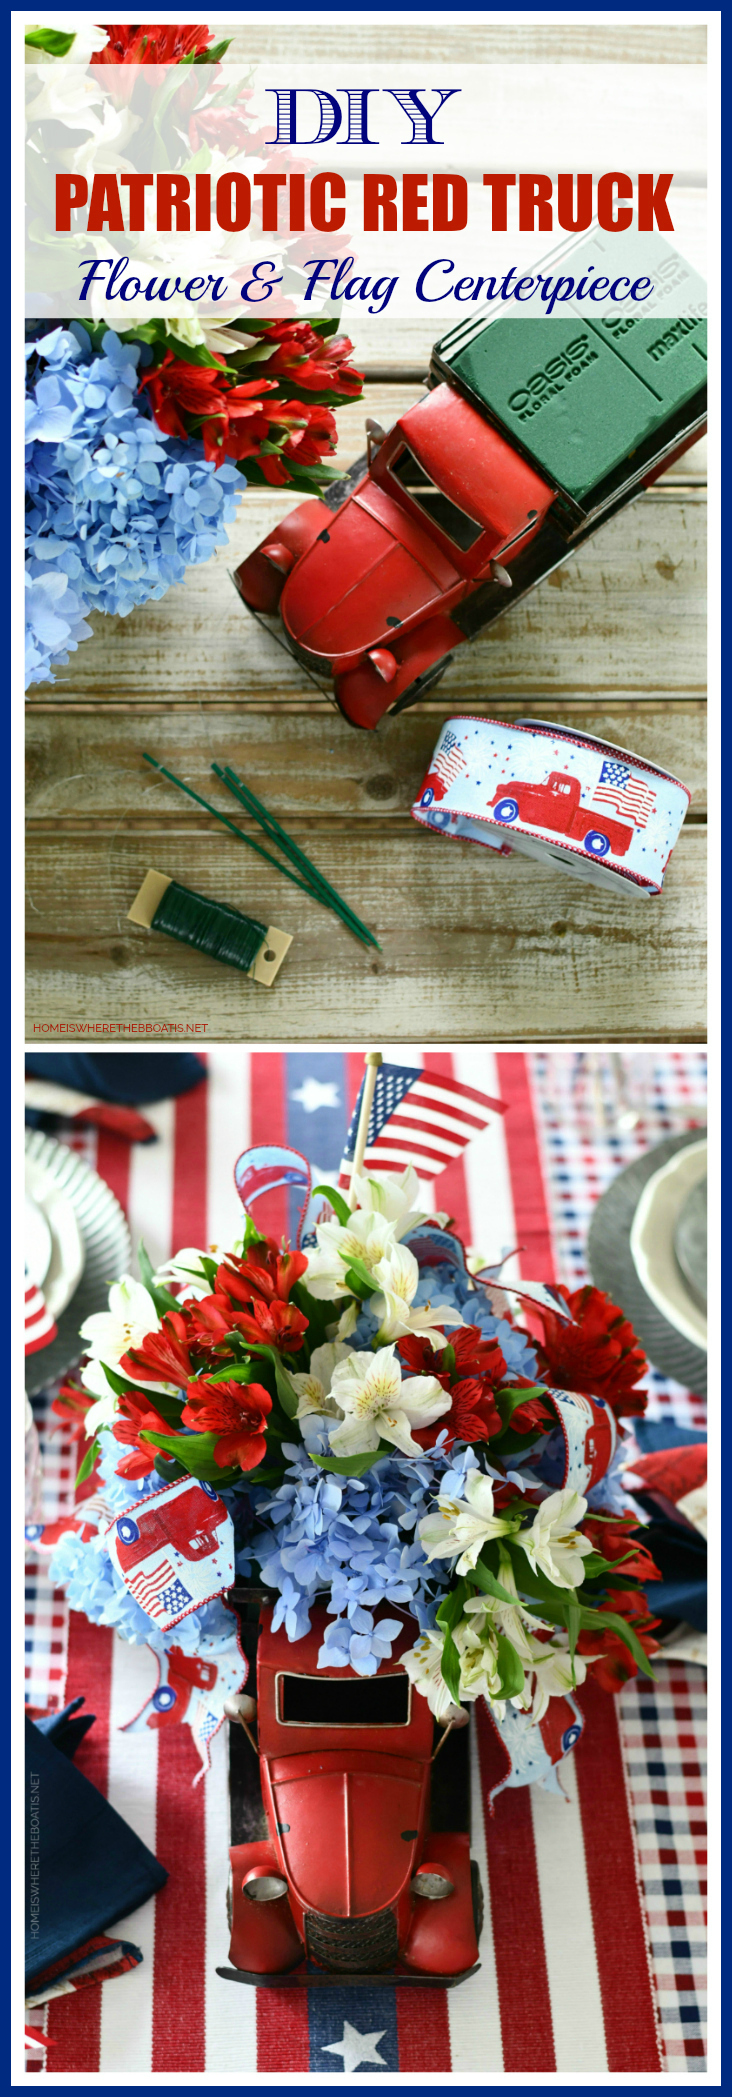 DIY Patriotic Red Truck Flower Centerpiece | ©homeiswheretheboatis.net #patriotic #tablescape #centerpiece #flag #4thofjuly